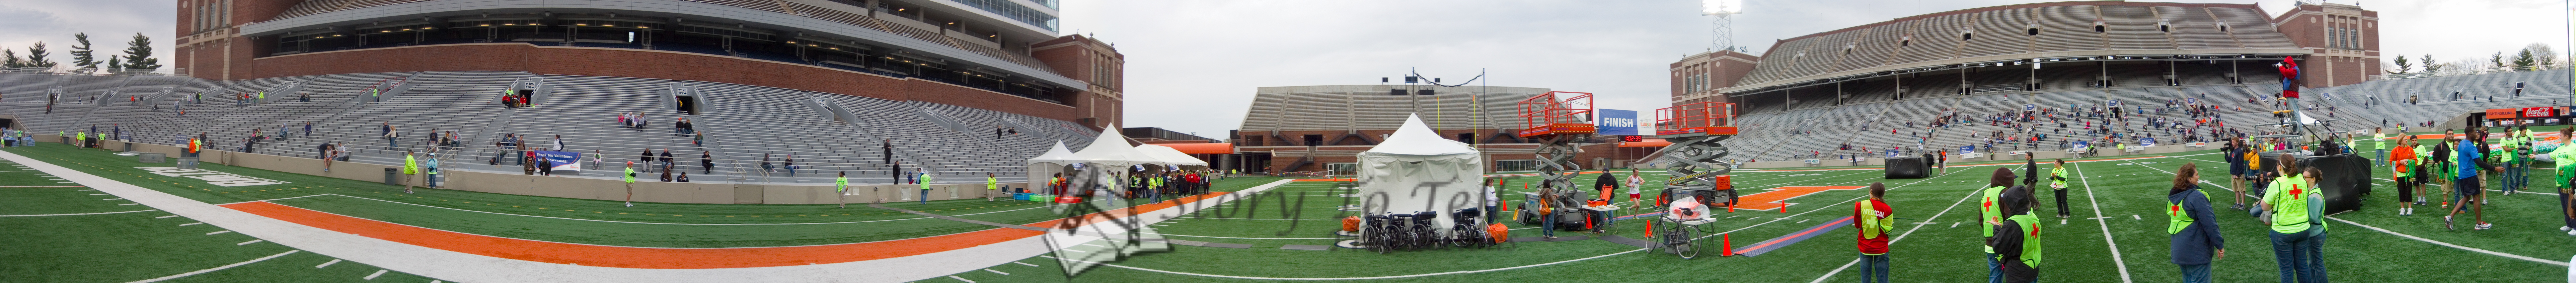 p89-1-p89-8half.jpg  Illinois Marathon 2011 Memorial Stadium Finish Line